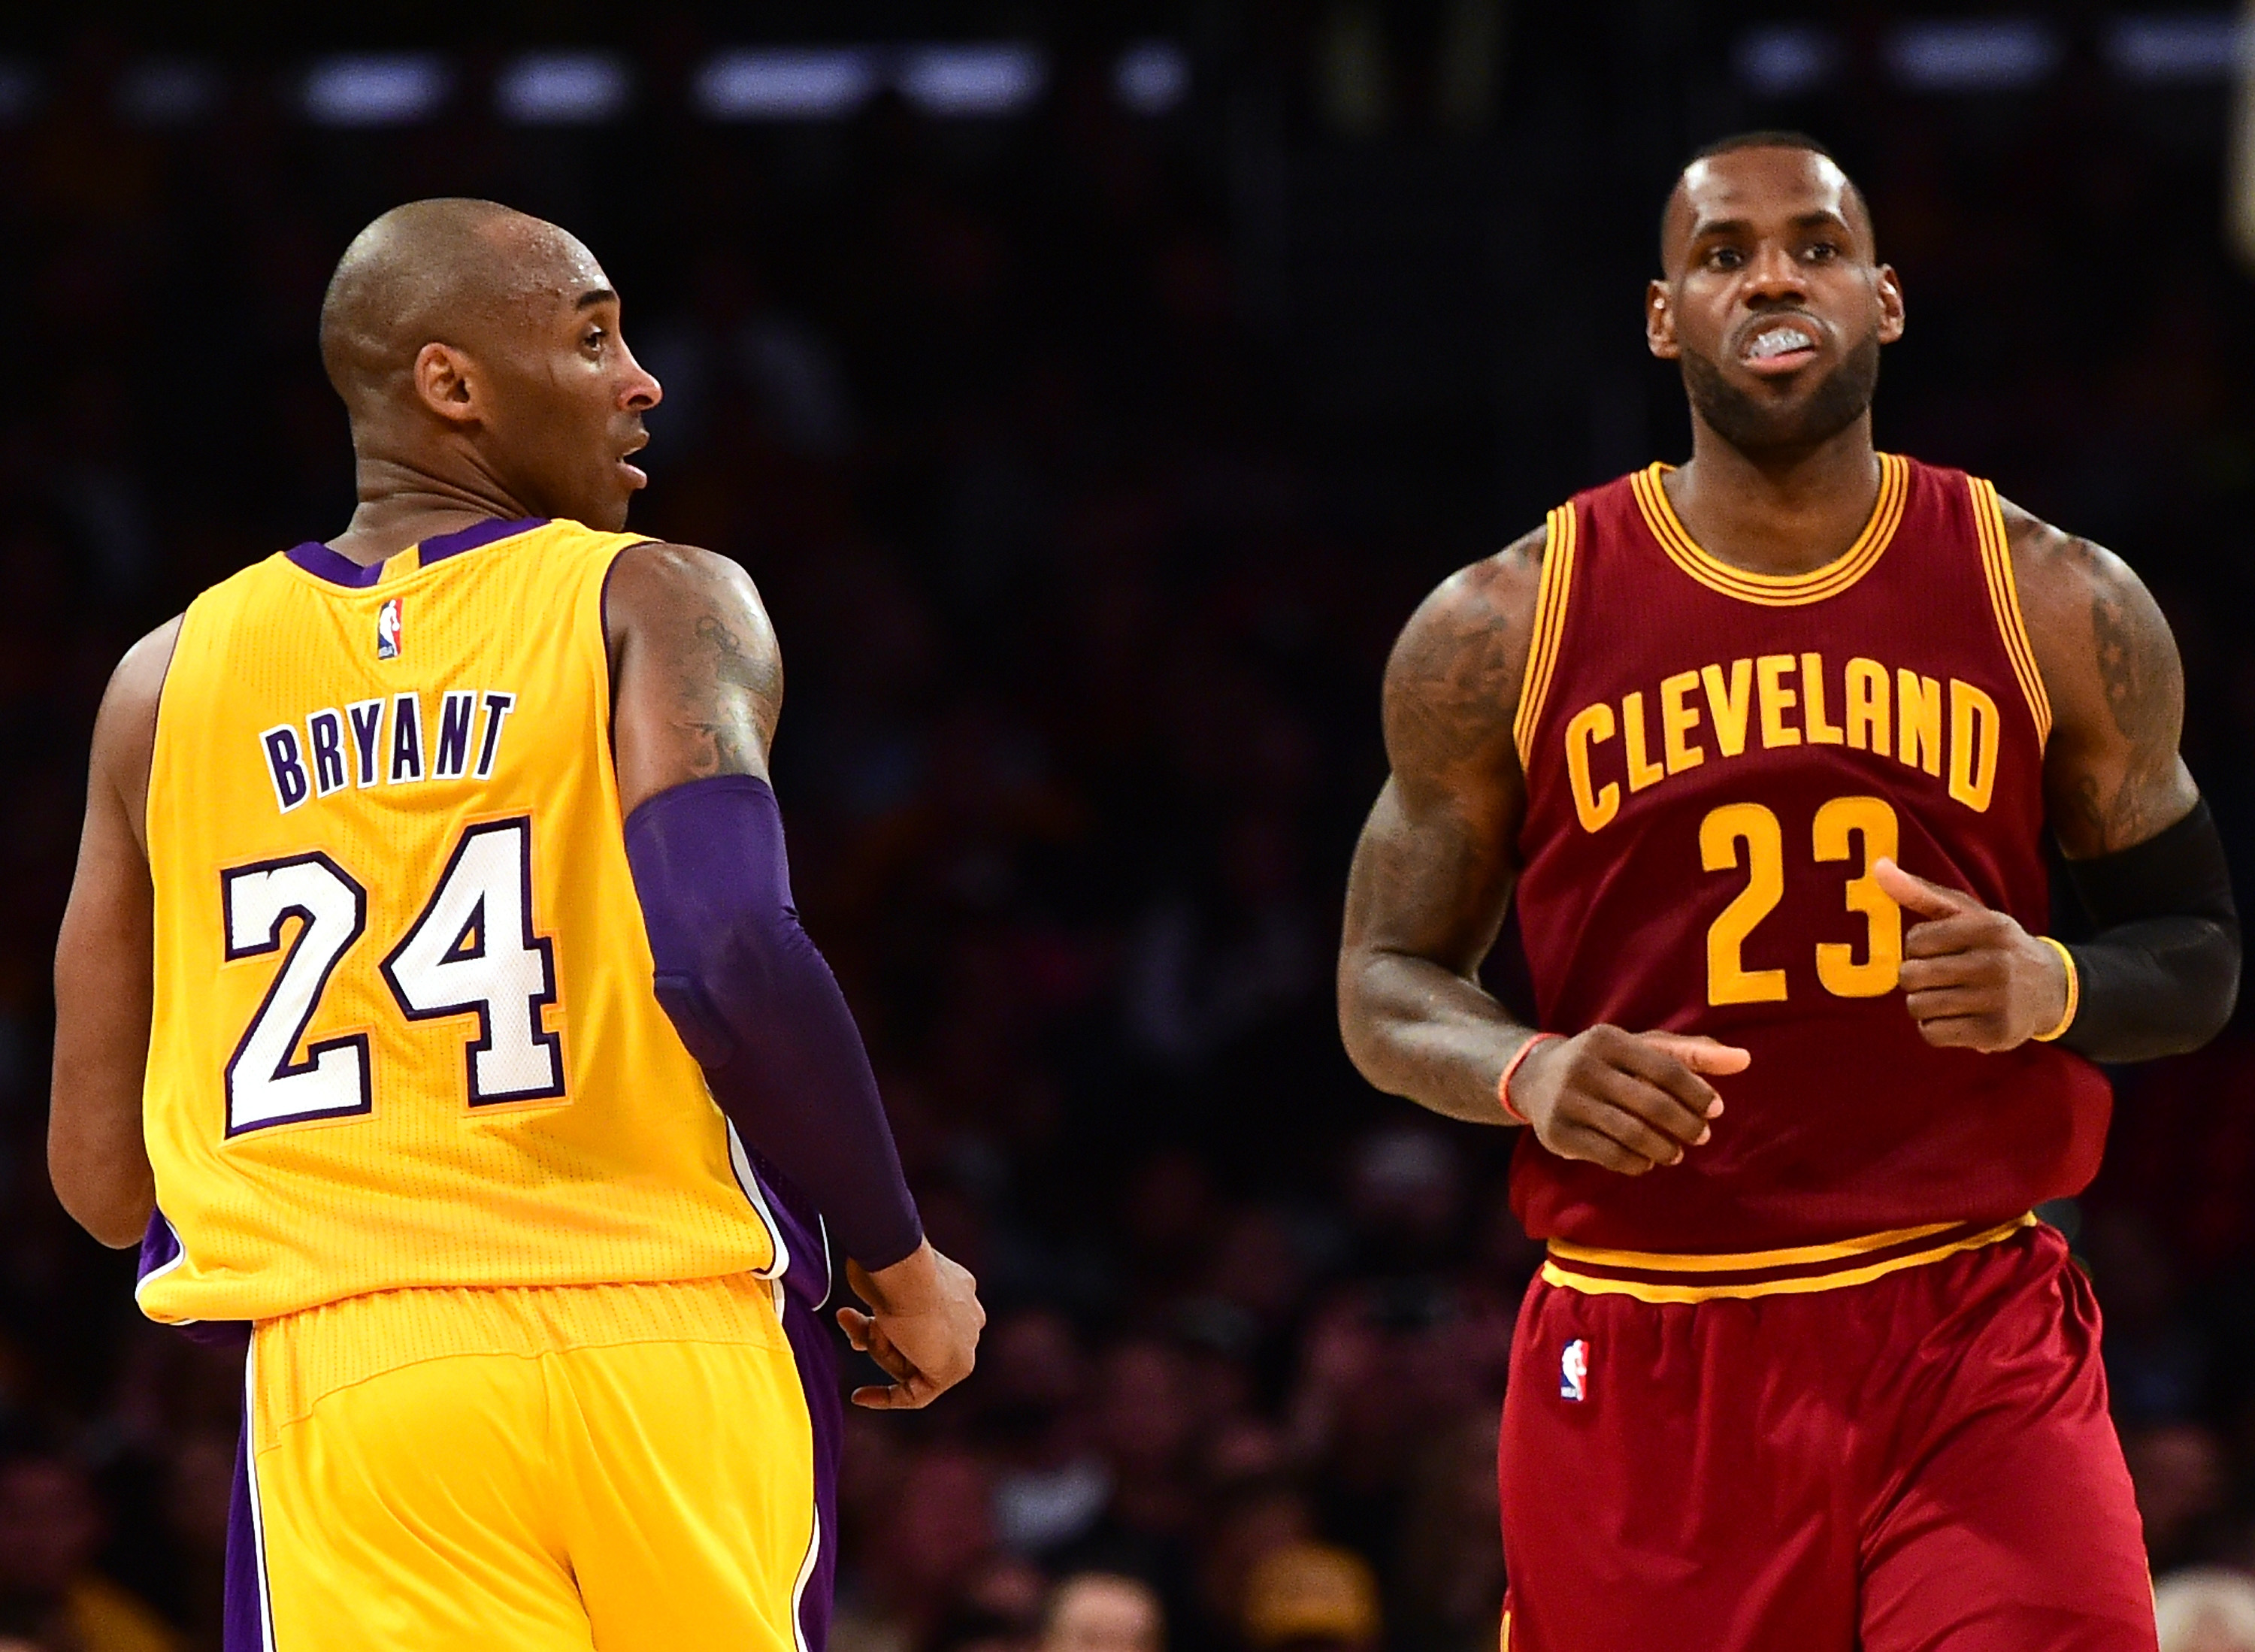 In his last social media posts, Kobe Bryant celebrated LeBron James for passing him on NBA's all-time scoring list